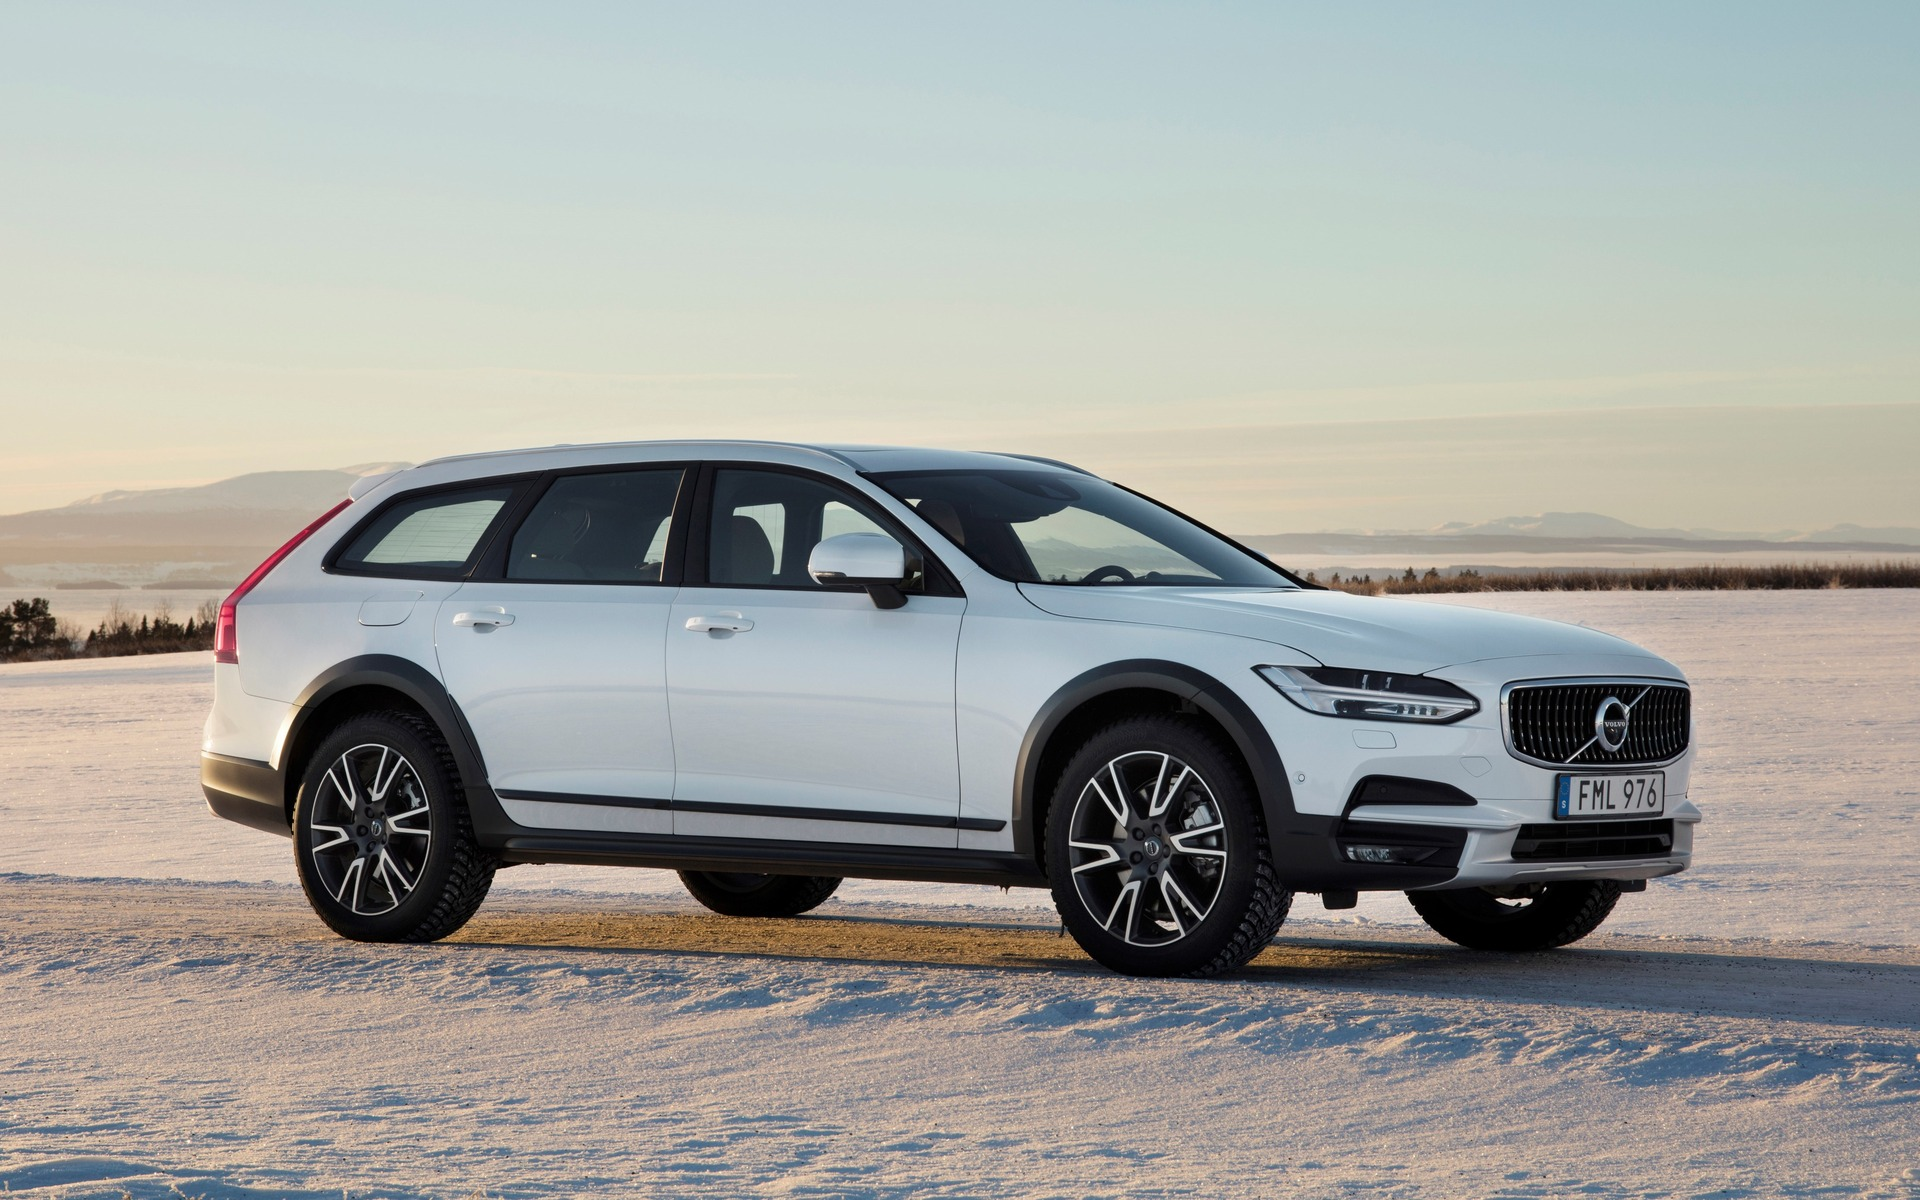 la volvo v90 cross country et le xc90 t8 sur glace en su de guide auto. Black Bedroom Furniture Sets. Home Design Ideas